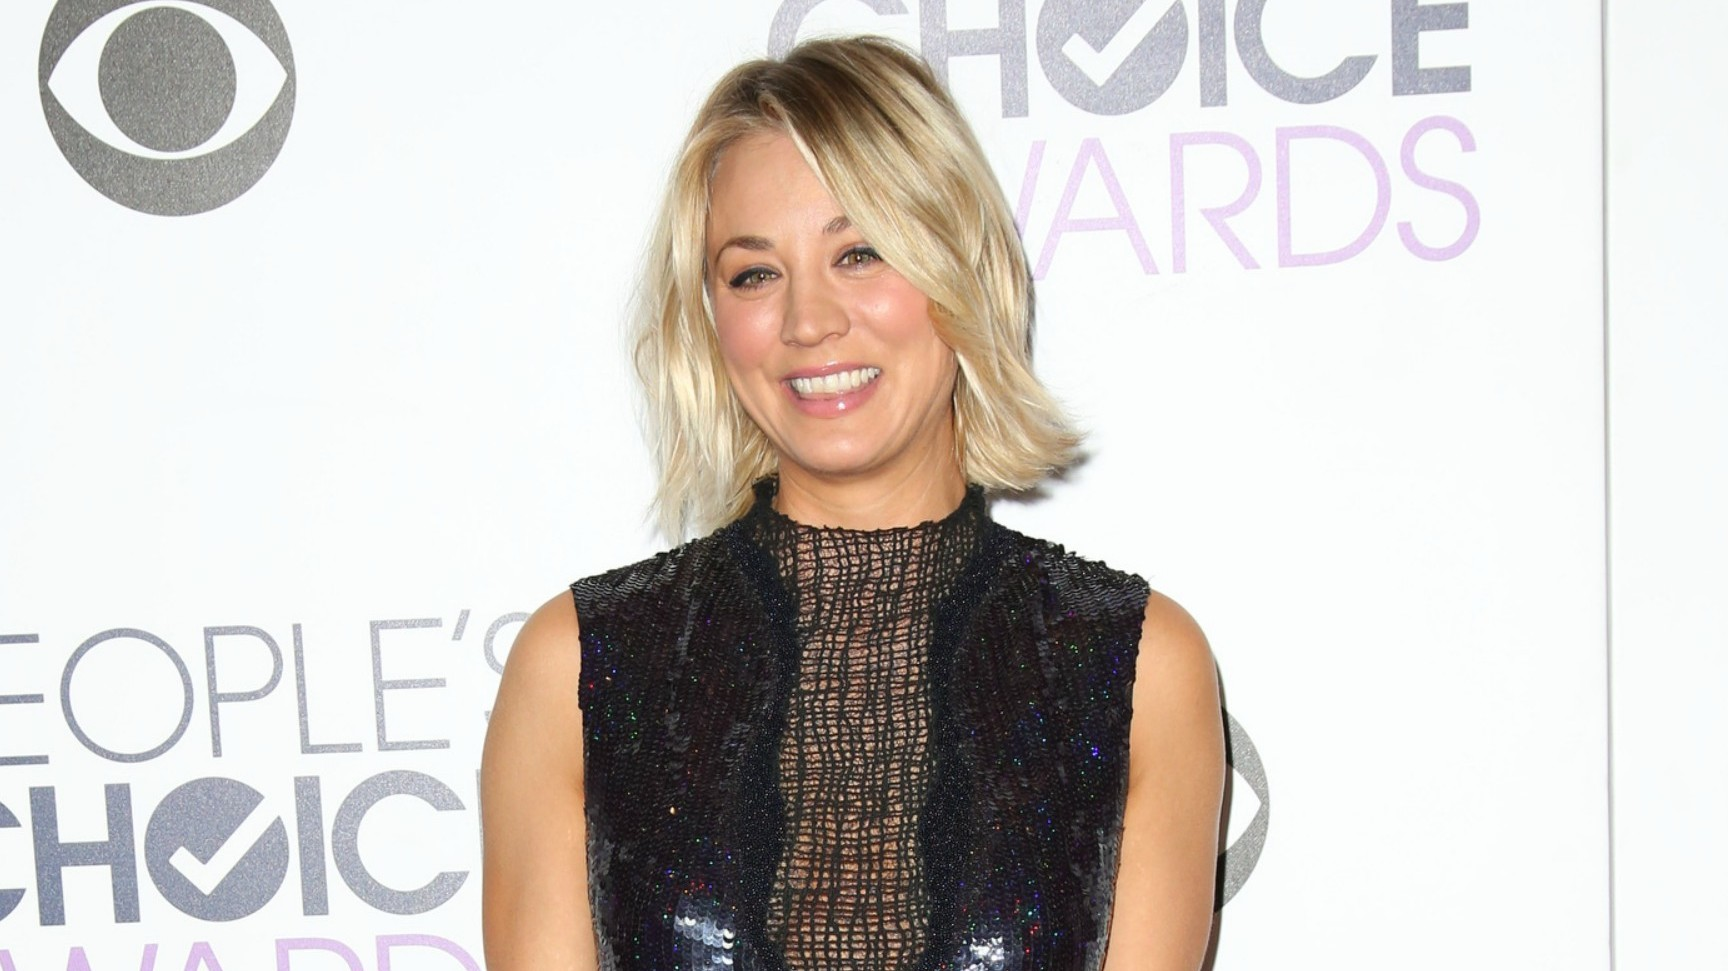 kaley-cuoco-gets-cozy-with-johnny-galecki-at-peoples-choice-awards-photos